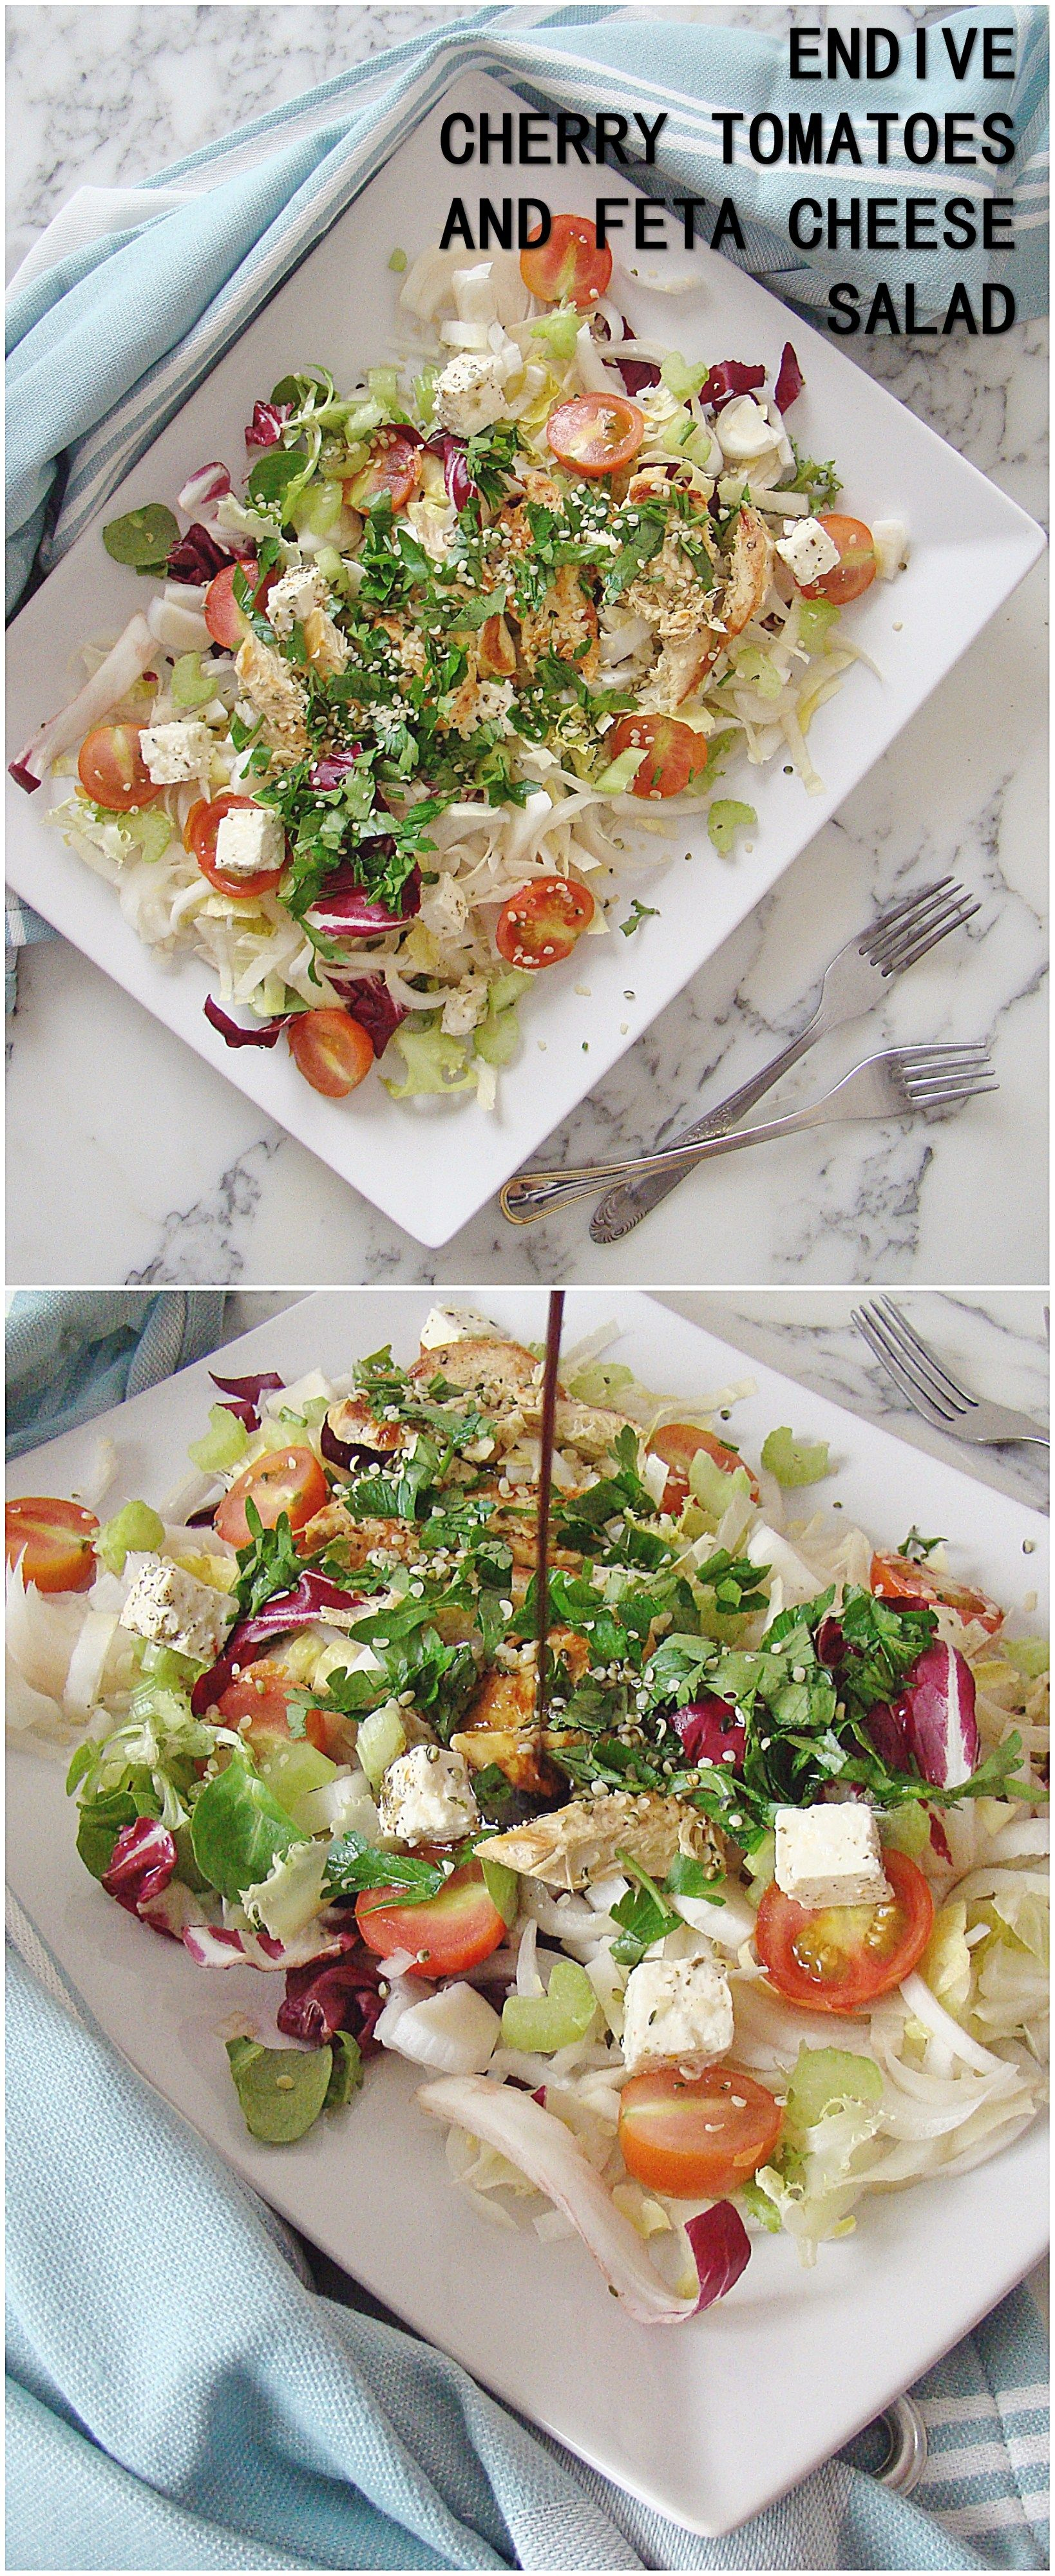 endive cherry tomatoes and feta cheese salad  recipe